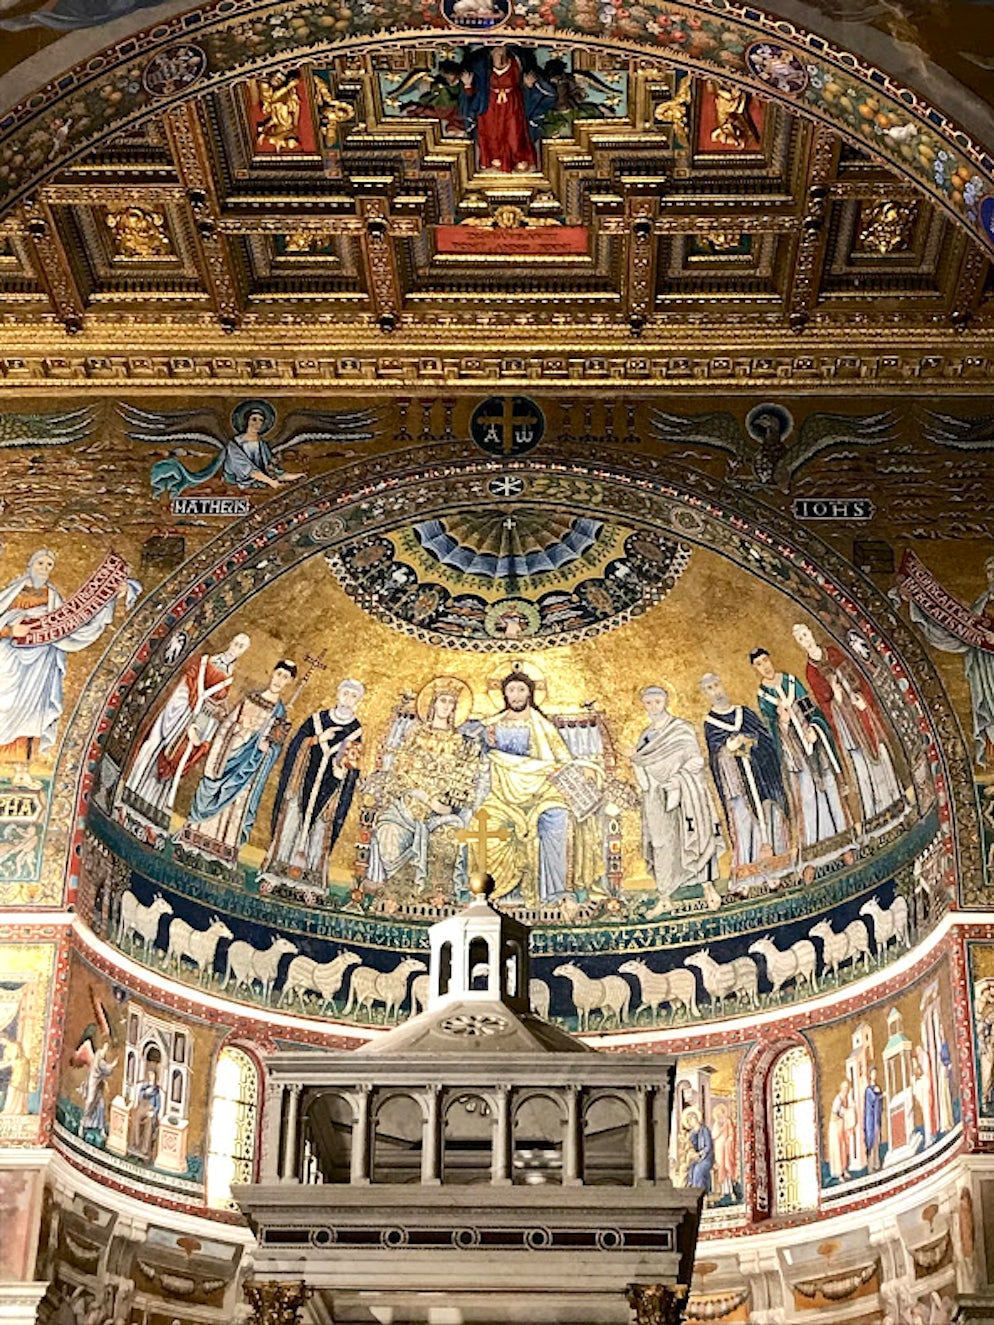 The interior of Basilica of Our Lady in Trastevere. Photo ©  Vy Dan Tran.